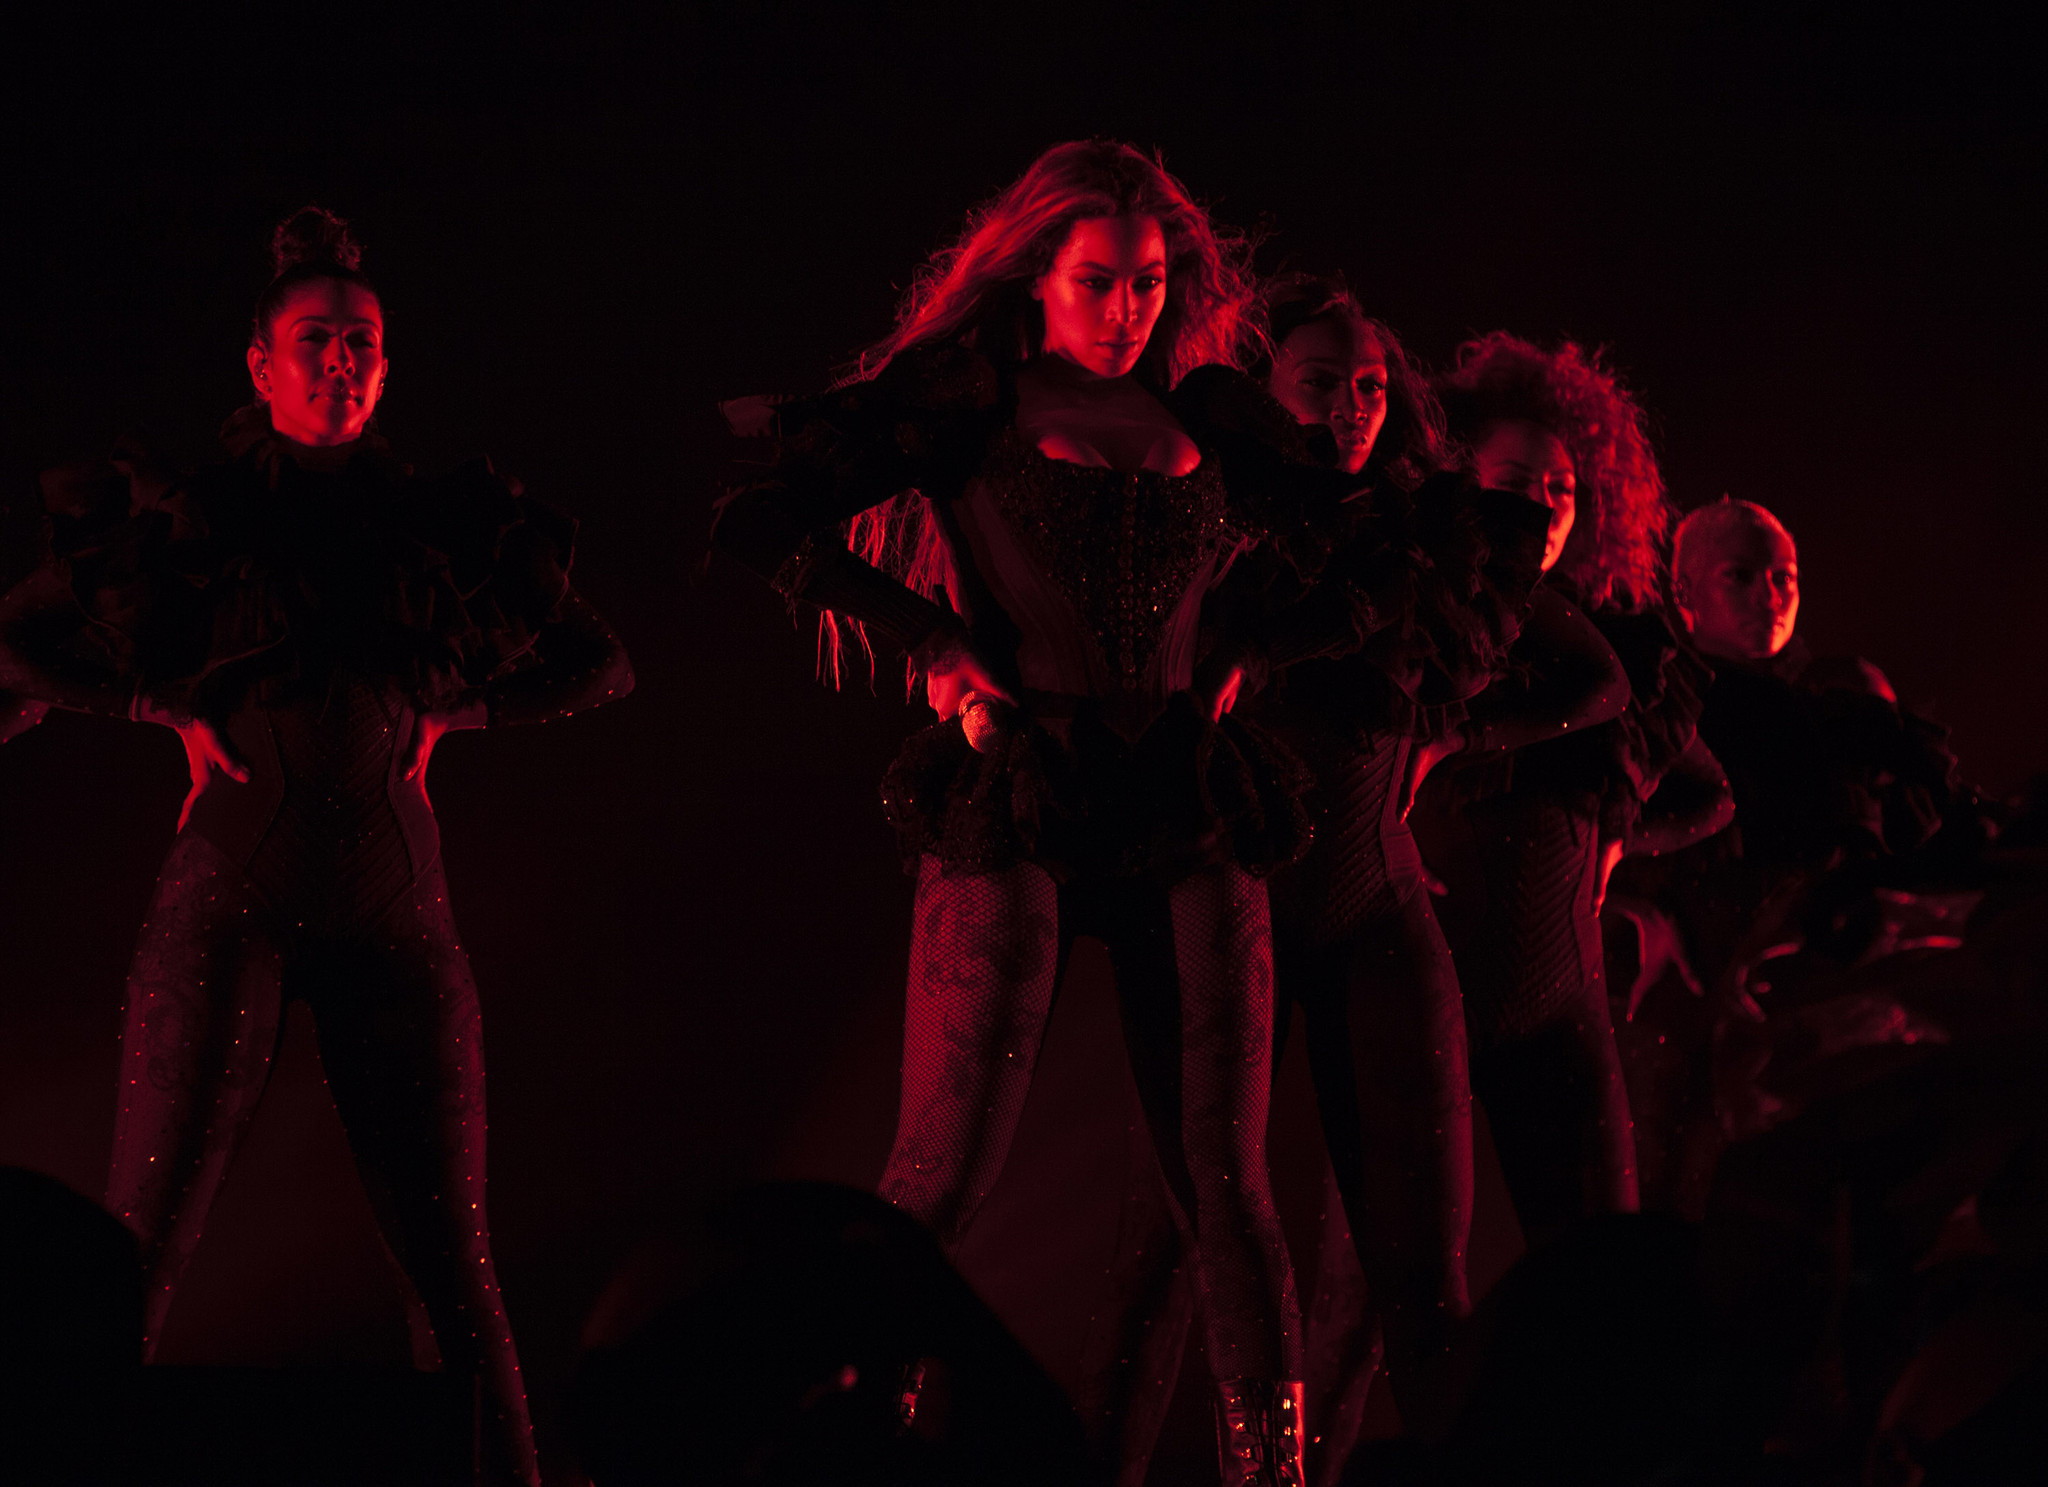 Beyoncé has long found strength in secrecy and silence - LA Times